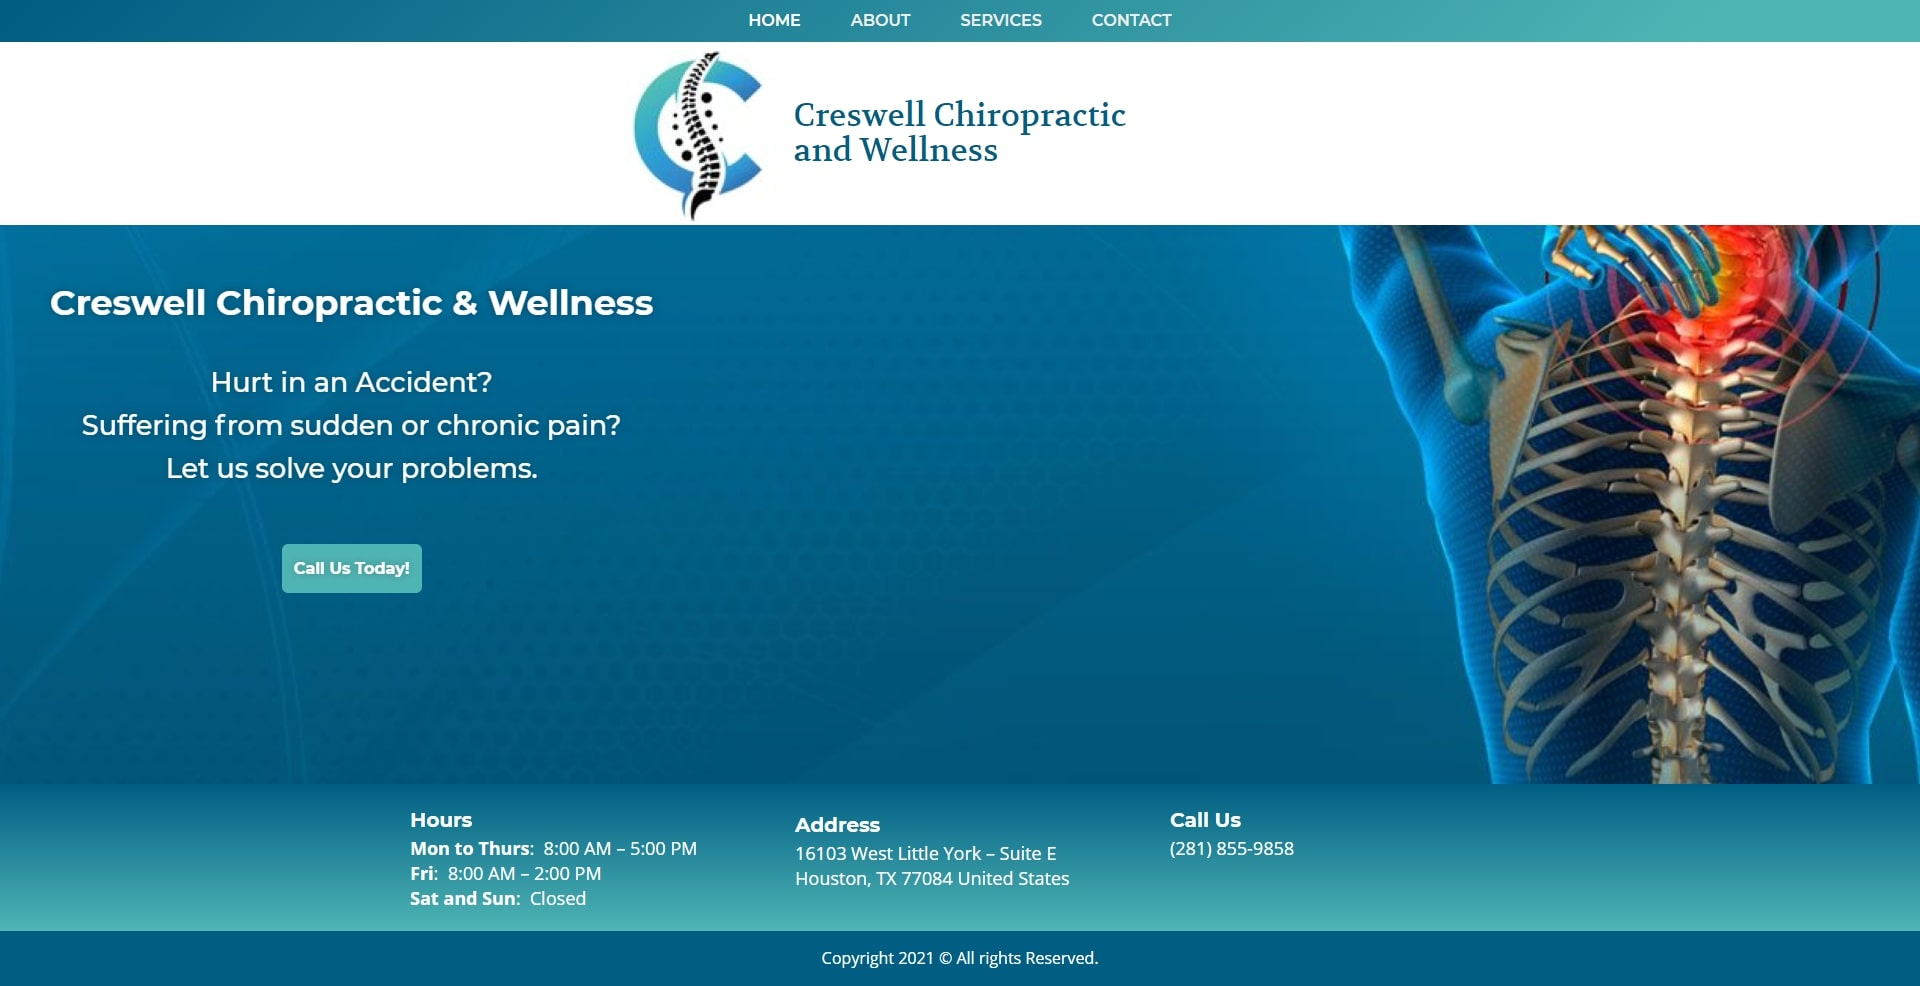 Creswell Chiropractic and Wellness